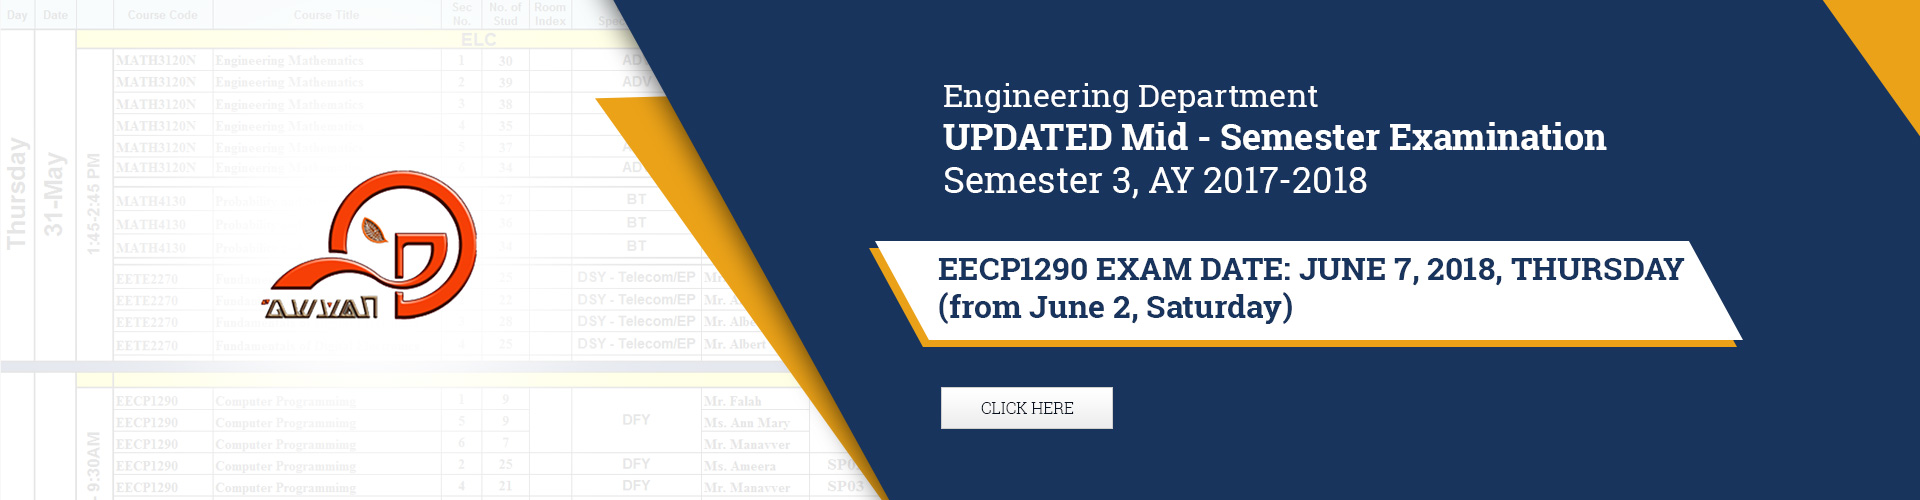 Engineering Department - Common Courses Midterm Examination, Semester 3 AY 2017-2018